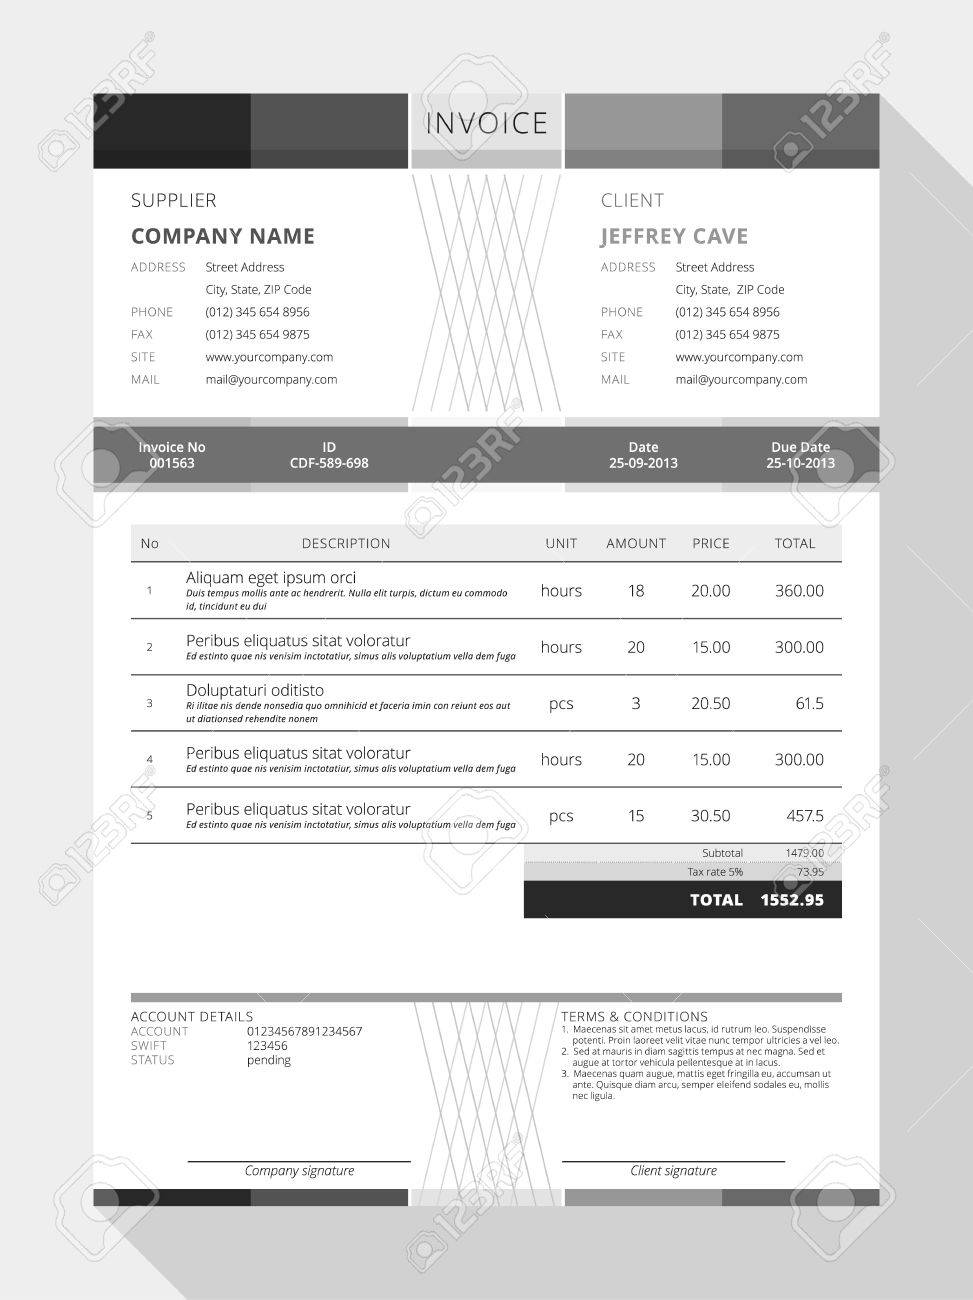 Ultrablogus  Prepossessing Design An Invoice  Professional Graphic Design Invoice  With Likable Vector Customizable Invoice Form Template Design Vector   Design An Invoice With Awesome Receipt Codes Also Cif Usmc Receipt In Addition Best Receipt Printer And Sales Tax Receipts As Well As How To Write A Receipt Of Sale Additionally Massage Receipt Template From Happytomco With Ultrablogus  Likable Design An Invoice  Professional Graphic Design Invoice  With Awesome Vector Customizable Invoice Form Template Design Vector   Design An Invoice And Prepossessing Receipt Codes Also Cif Usmc Receipt In Addition Best Receipt Printer From Happytomco